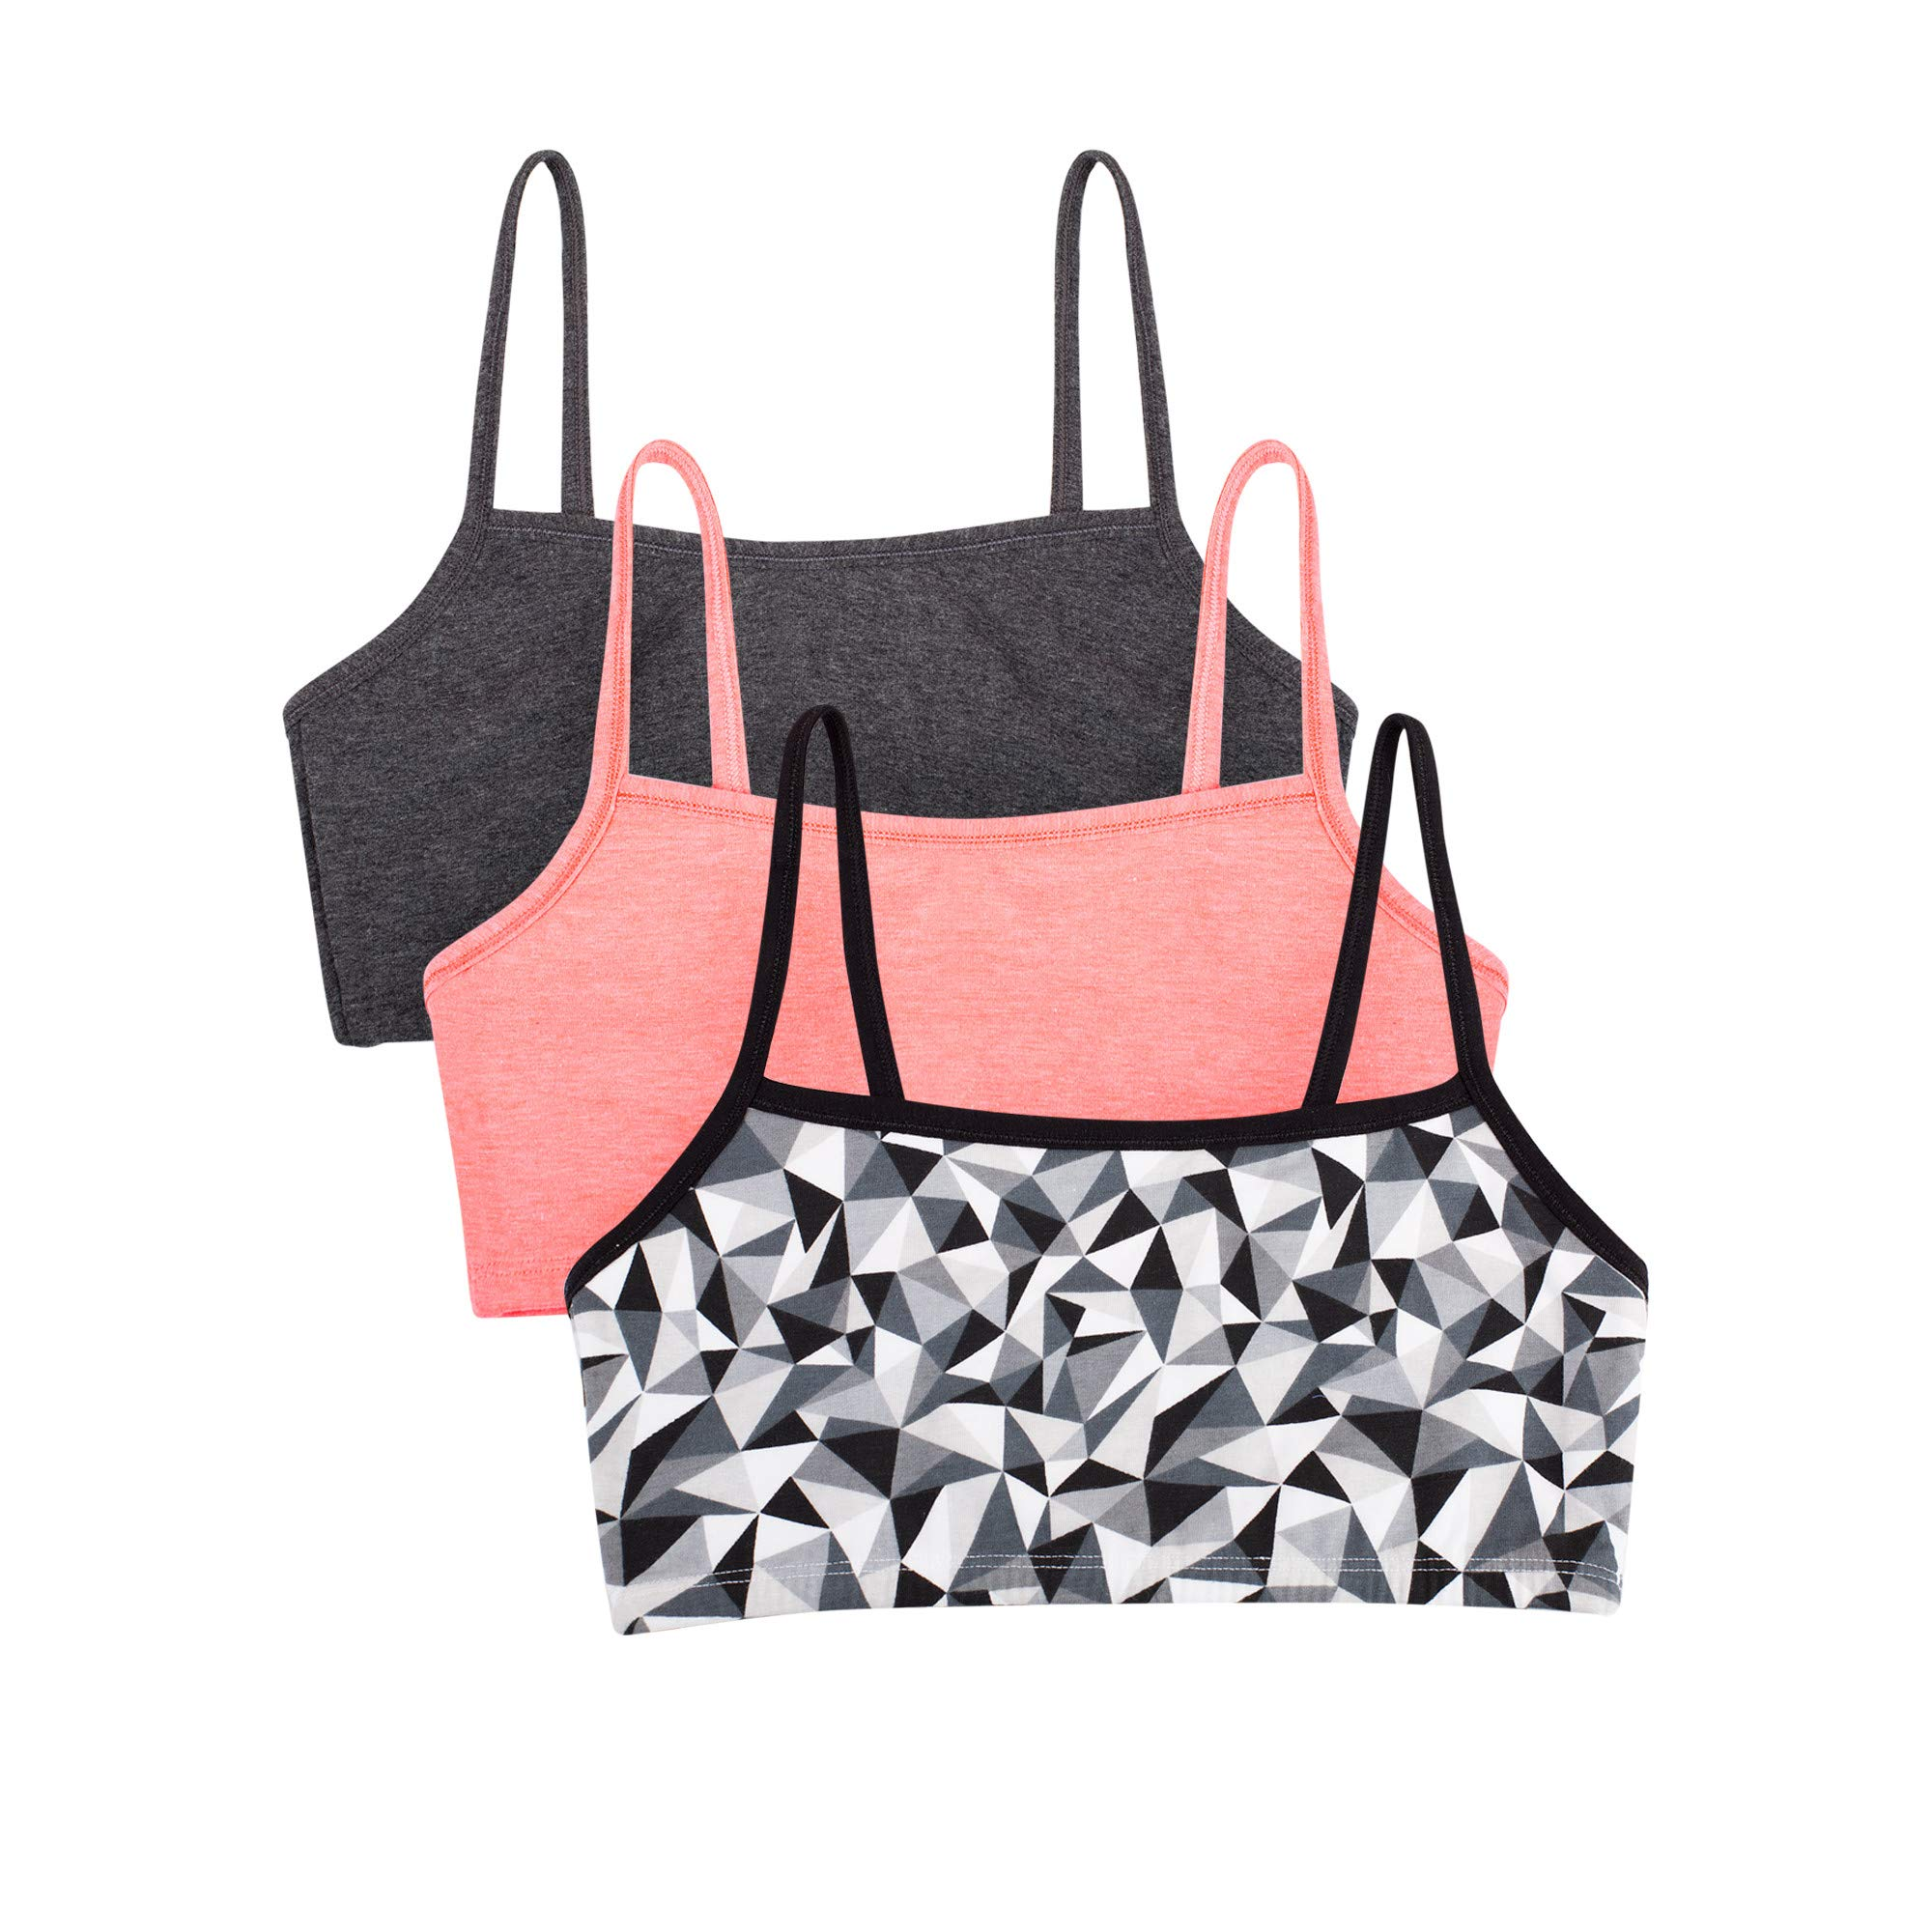 Fruit of the Loom womens Cotton Pullover Sport Bra, kaleidoscope/charcoal/punchy peach 32